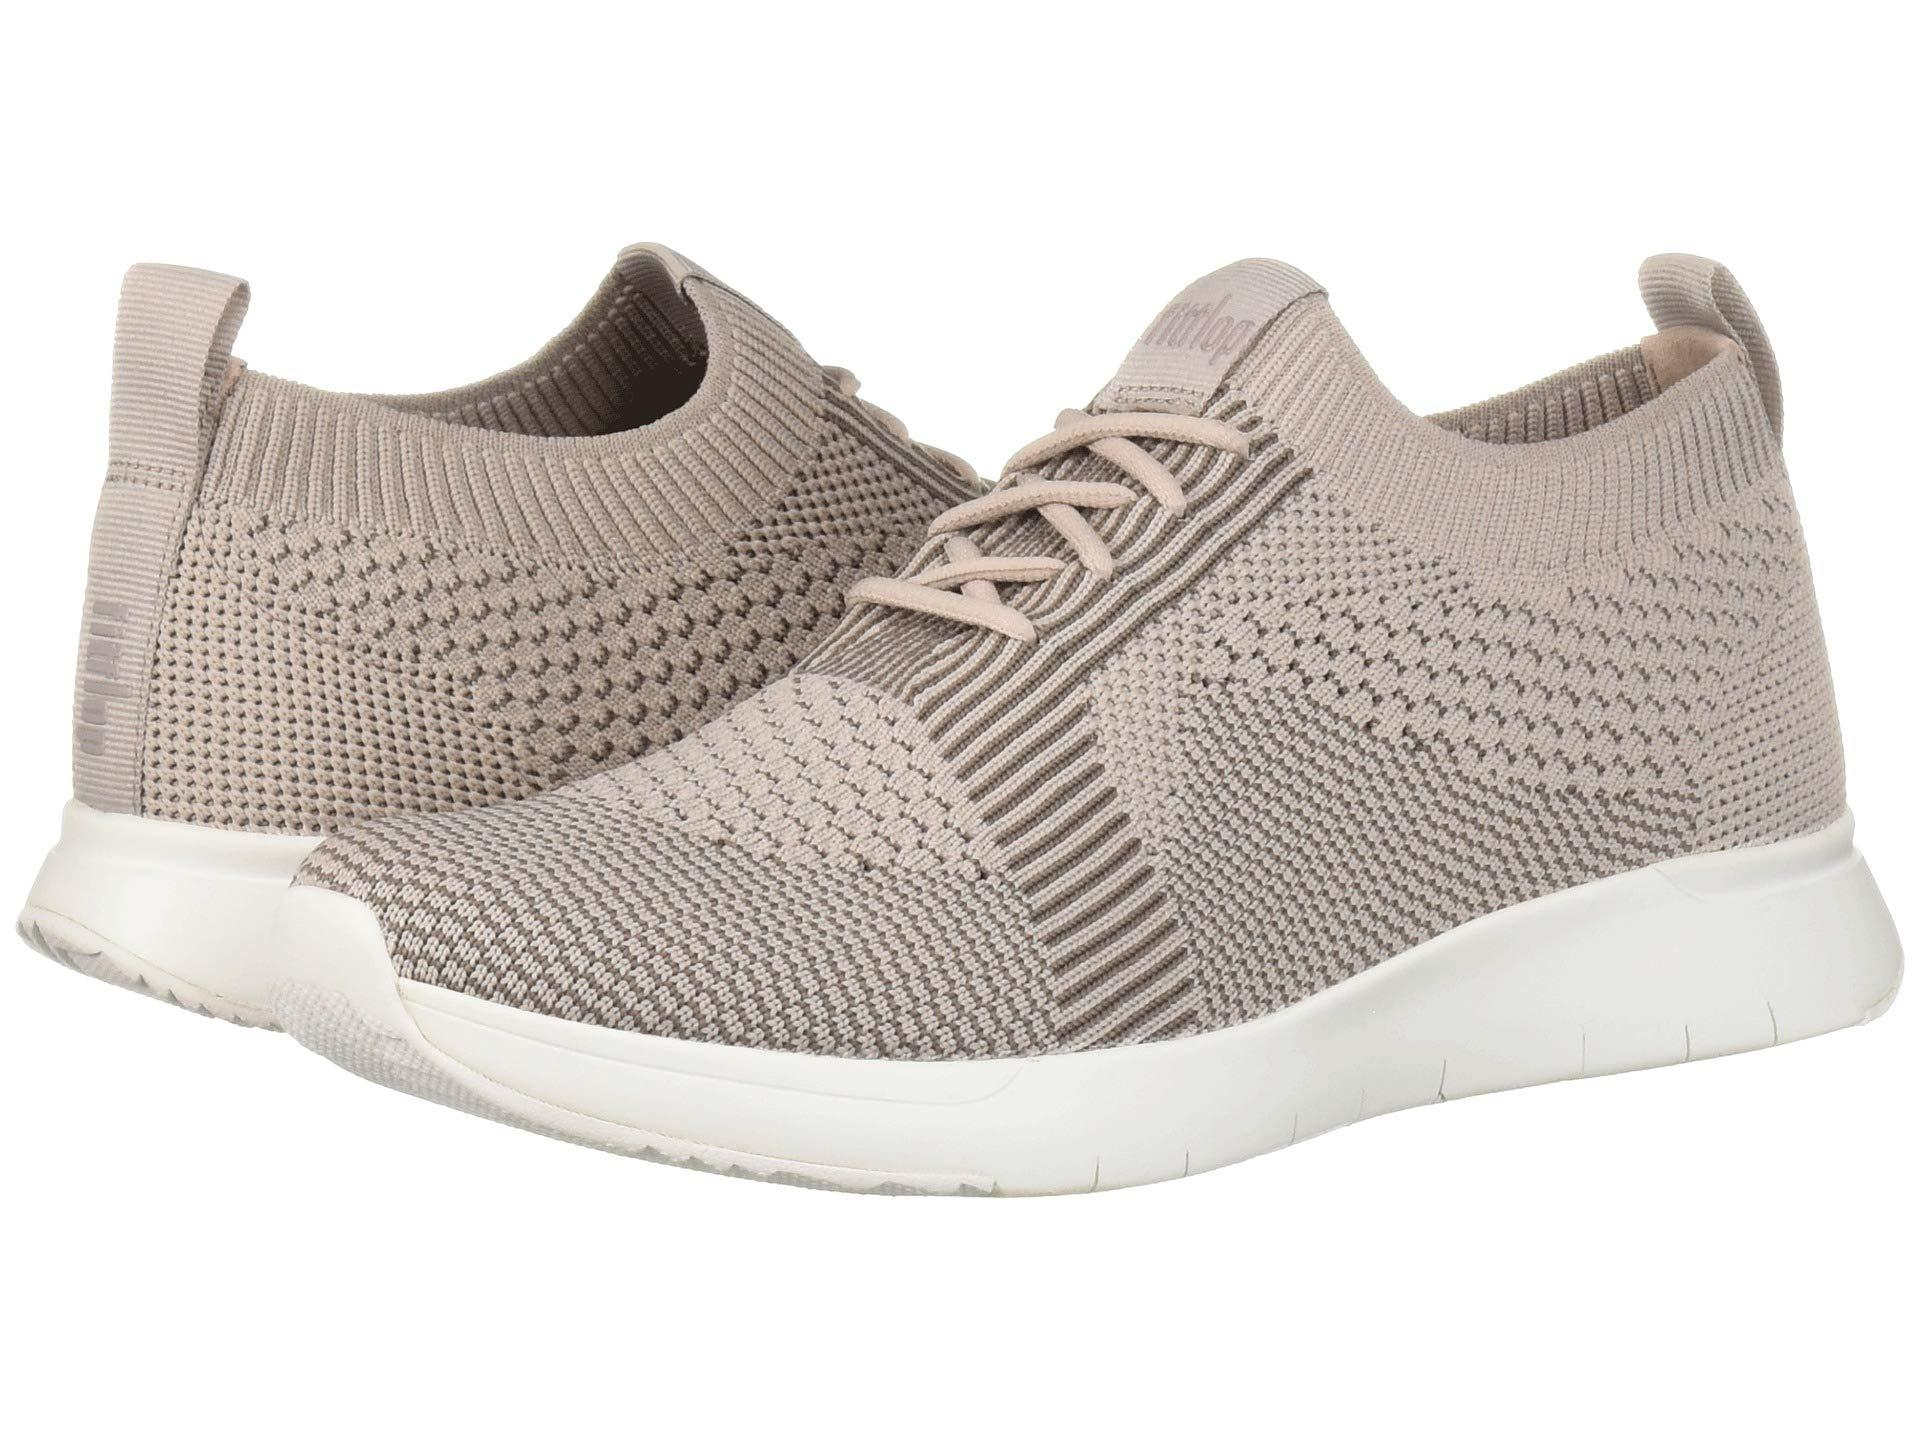 Fitflop Rubber Marble Knit Slip-on